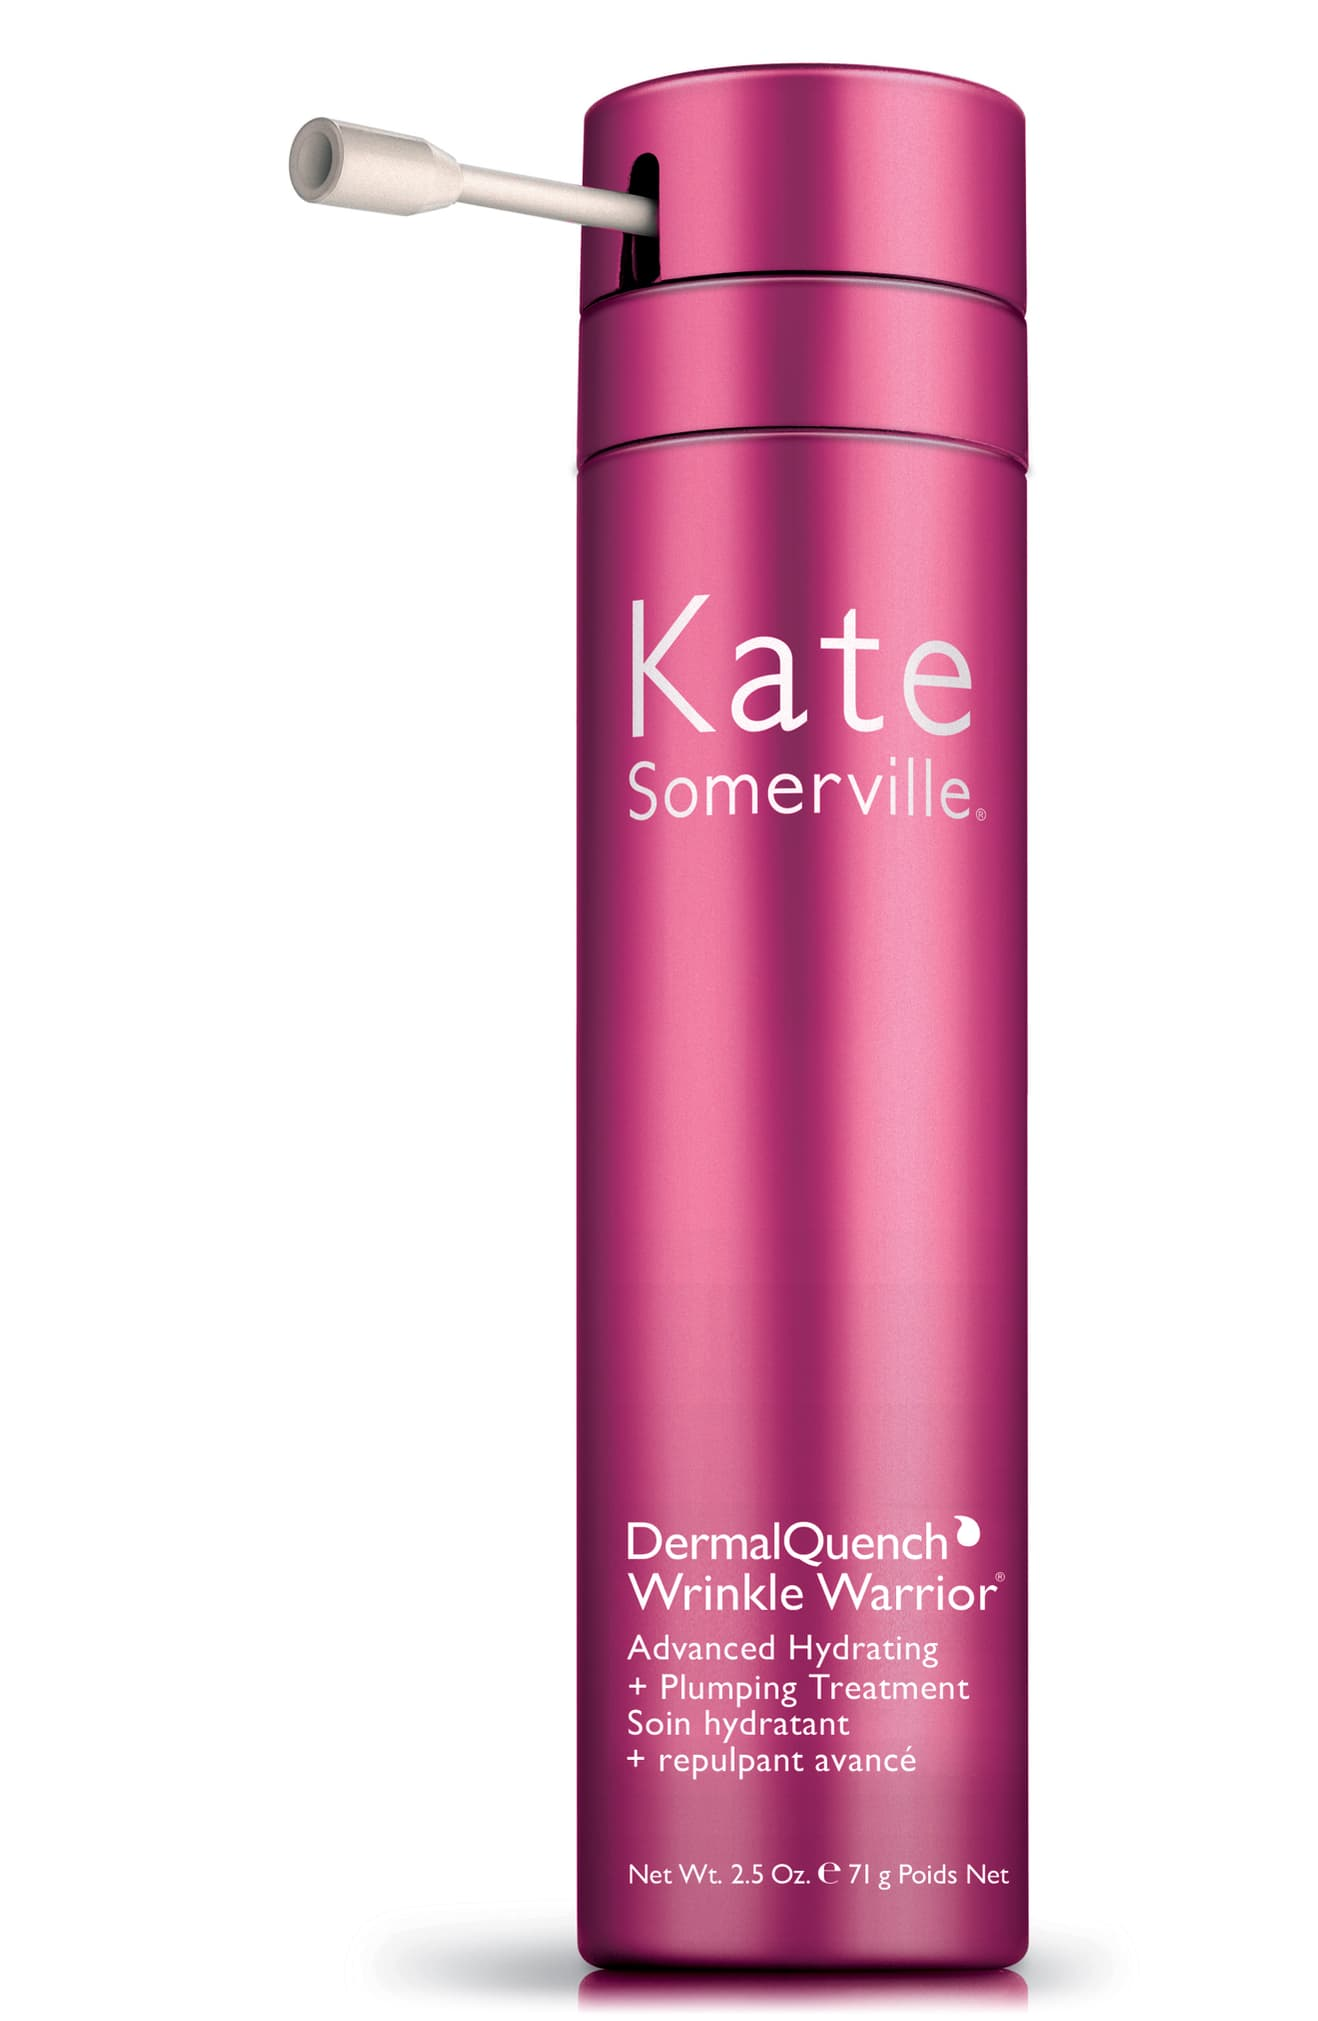 KATE SOMERVILLE® Dermalquench Wrinkle Warrior® Advanced Hydrating & Plumping Treatment